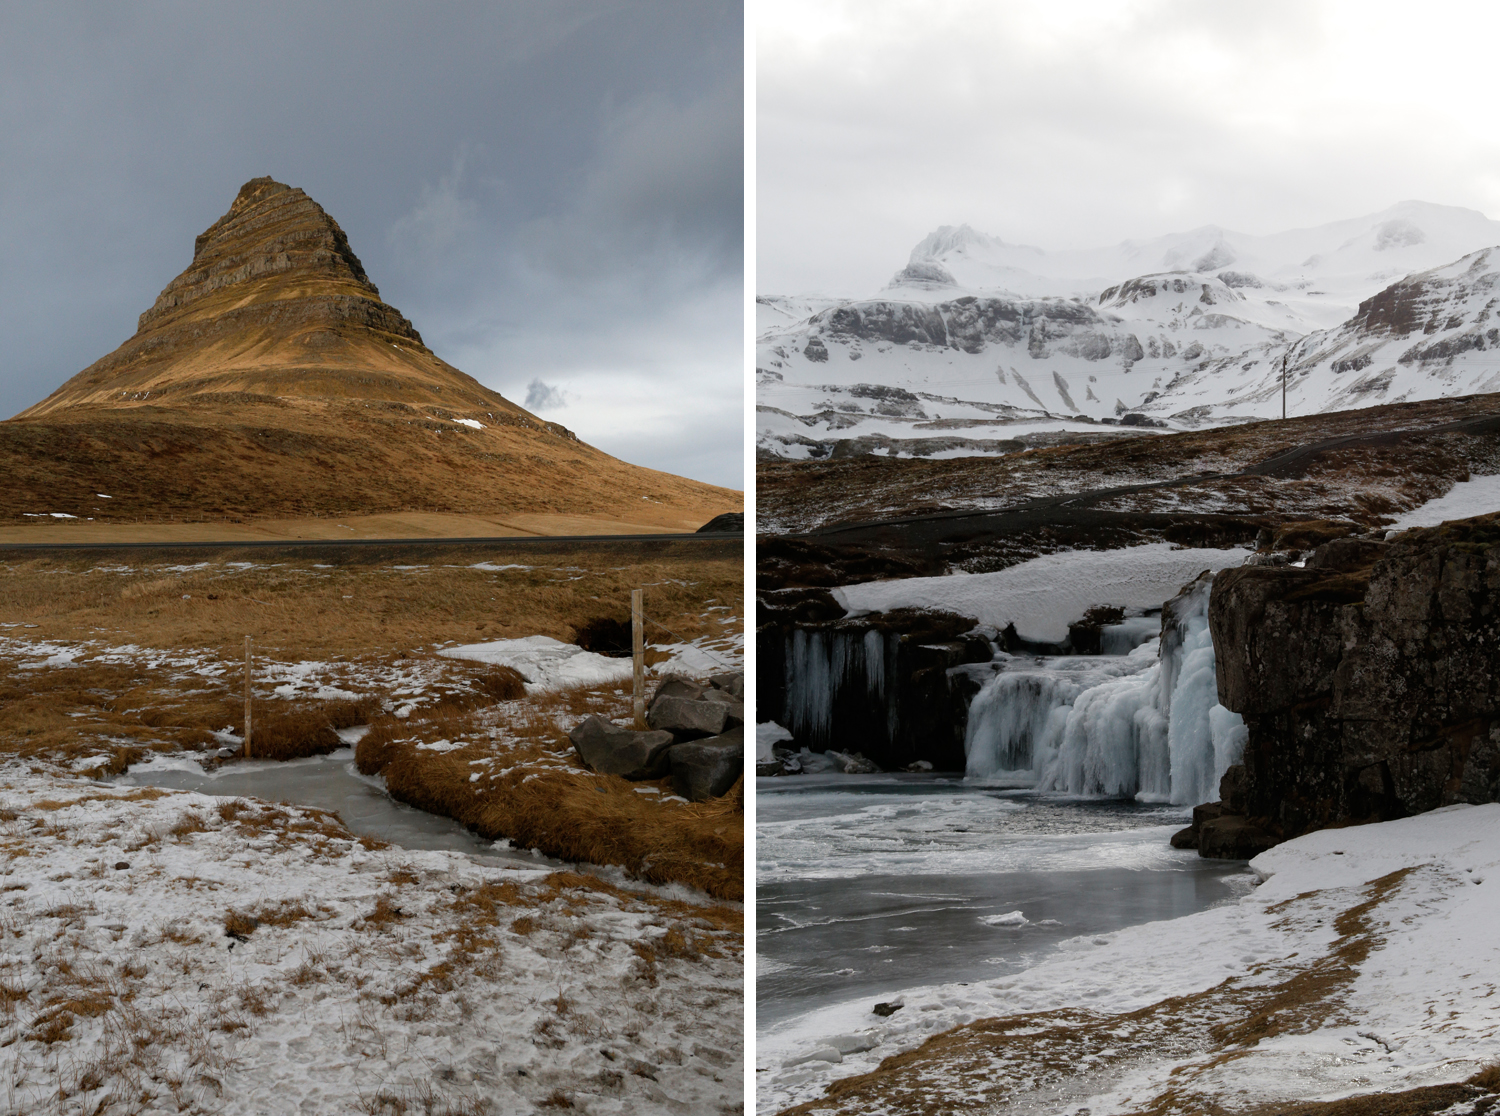 Left: Mount Kirkjufell is a steep mountain with an almost triangular shape. It's light brown vegetation sets itself apart from a dramatic grey sky. Right: Kirkjufellsfoss waterfall is half frozen. Its large icicles fit well into surroundings dominated by ice and snow.